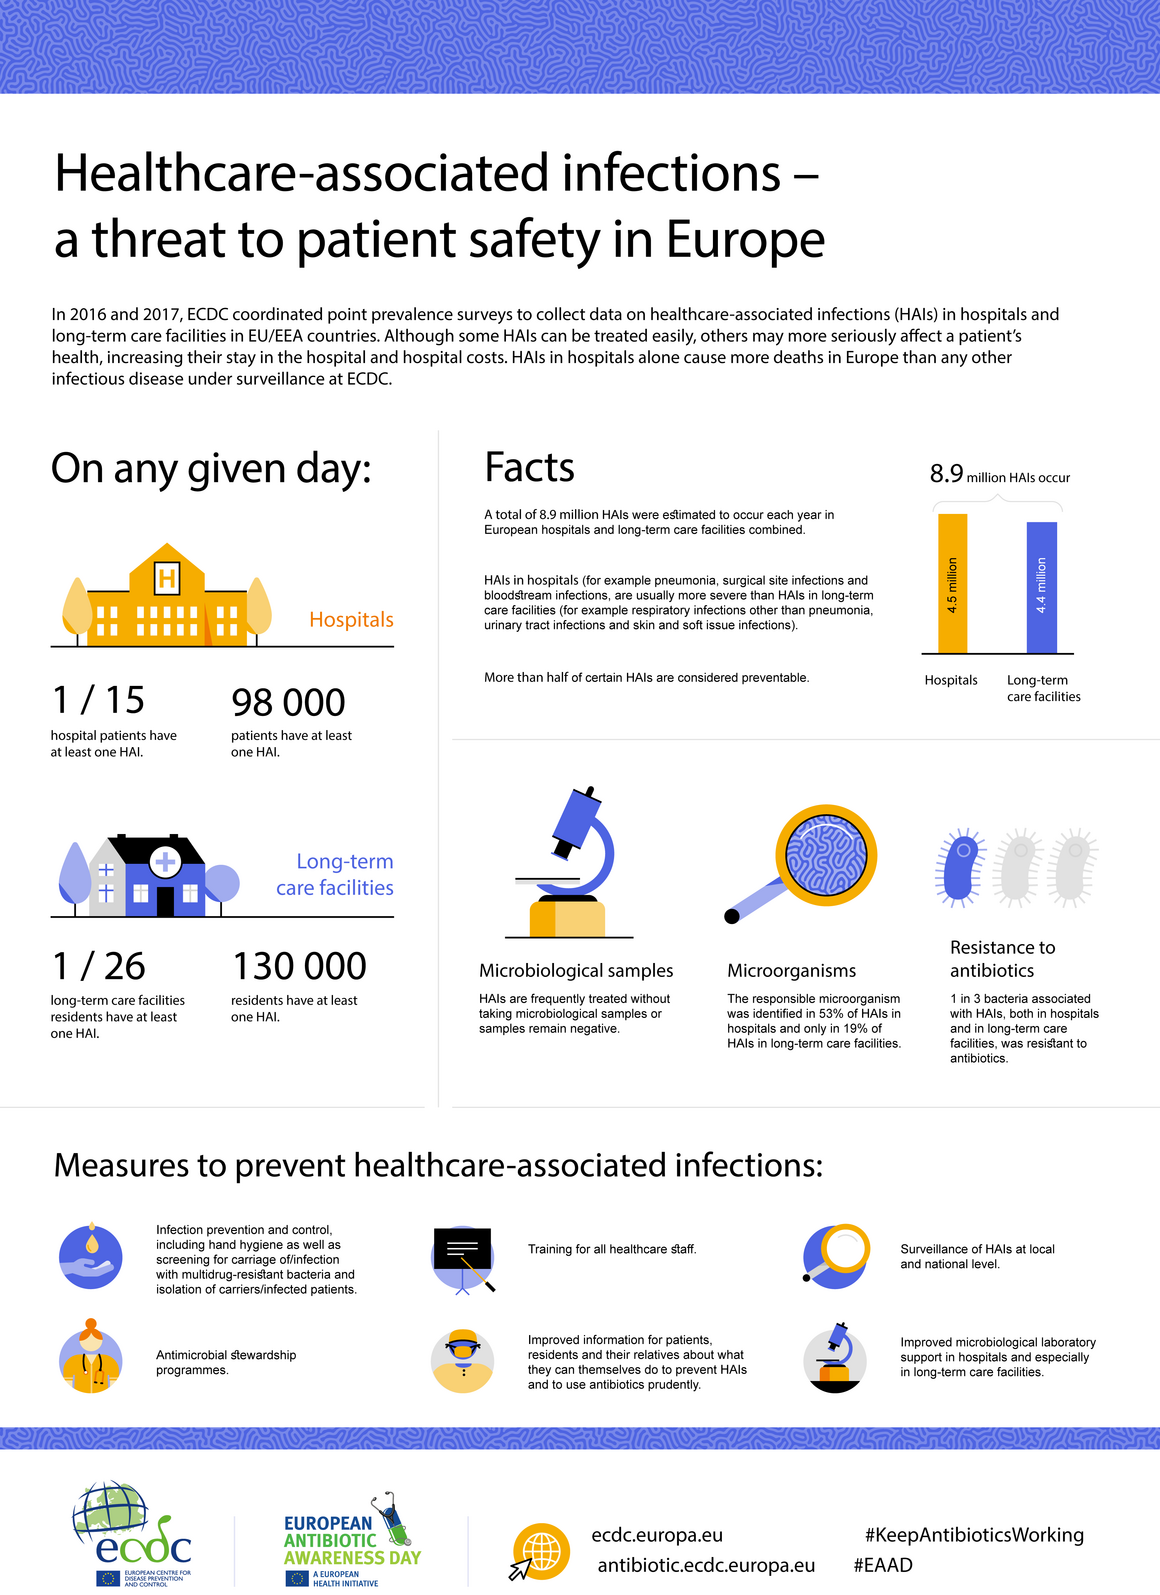 Healthcare-associated infections – a threat to patient safety in Europe